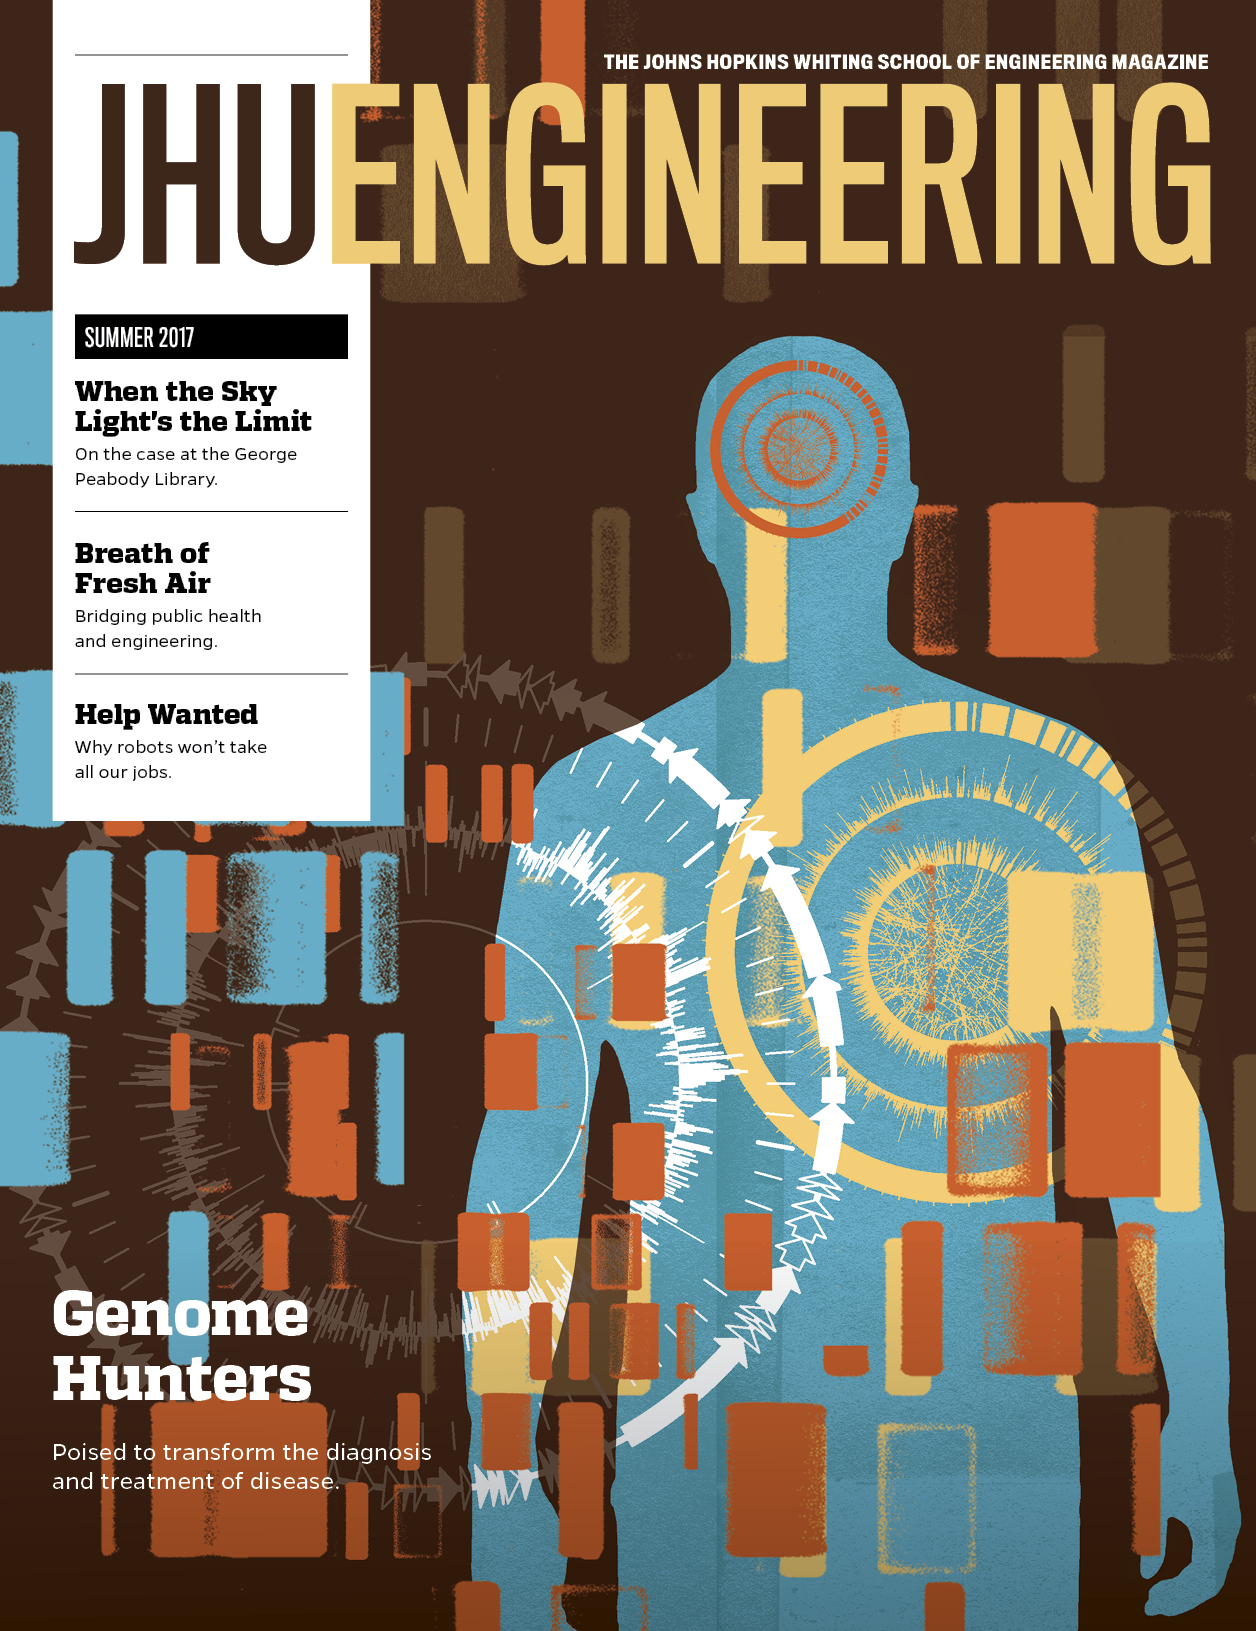 JHU Engineering Summer 2017 magazine cover